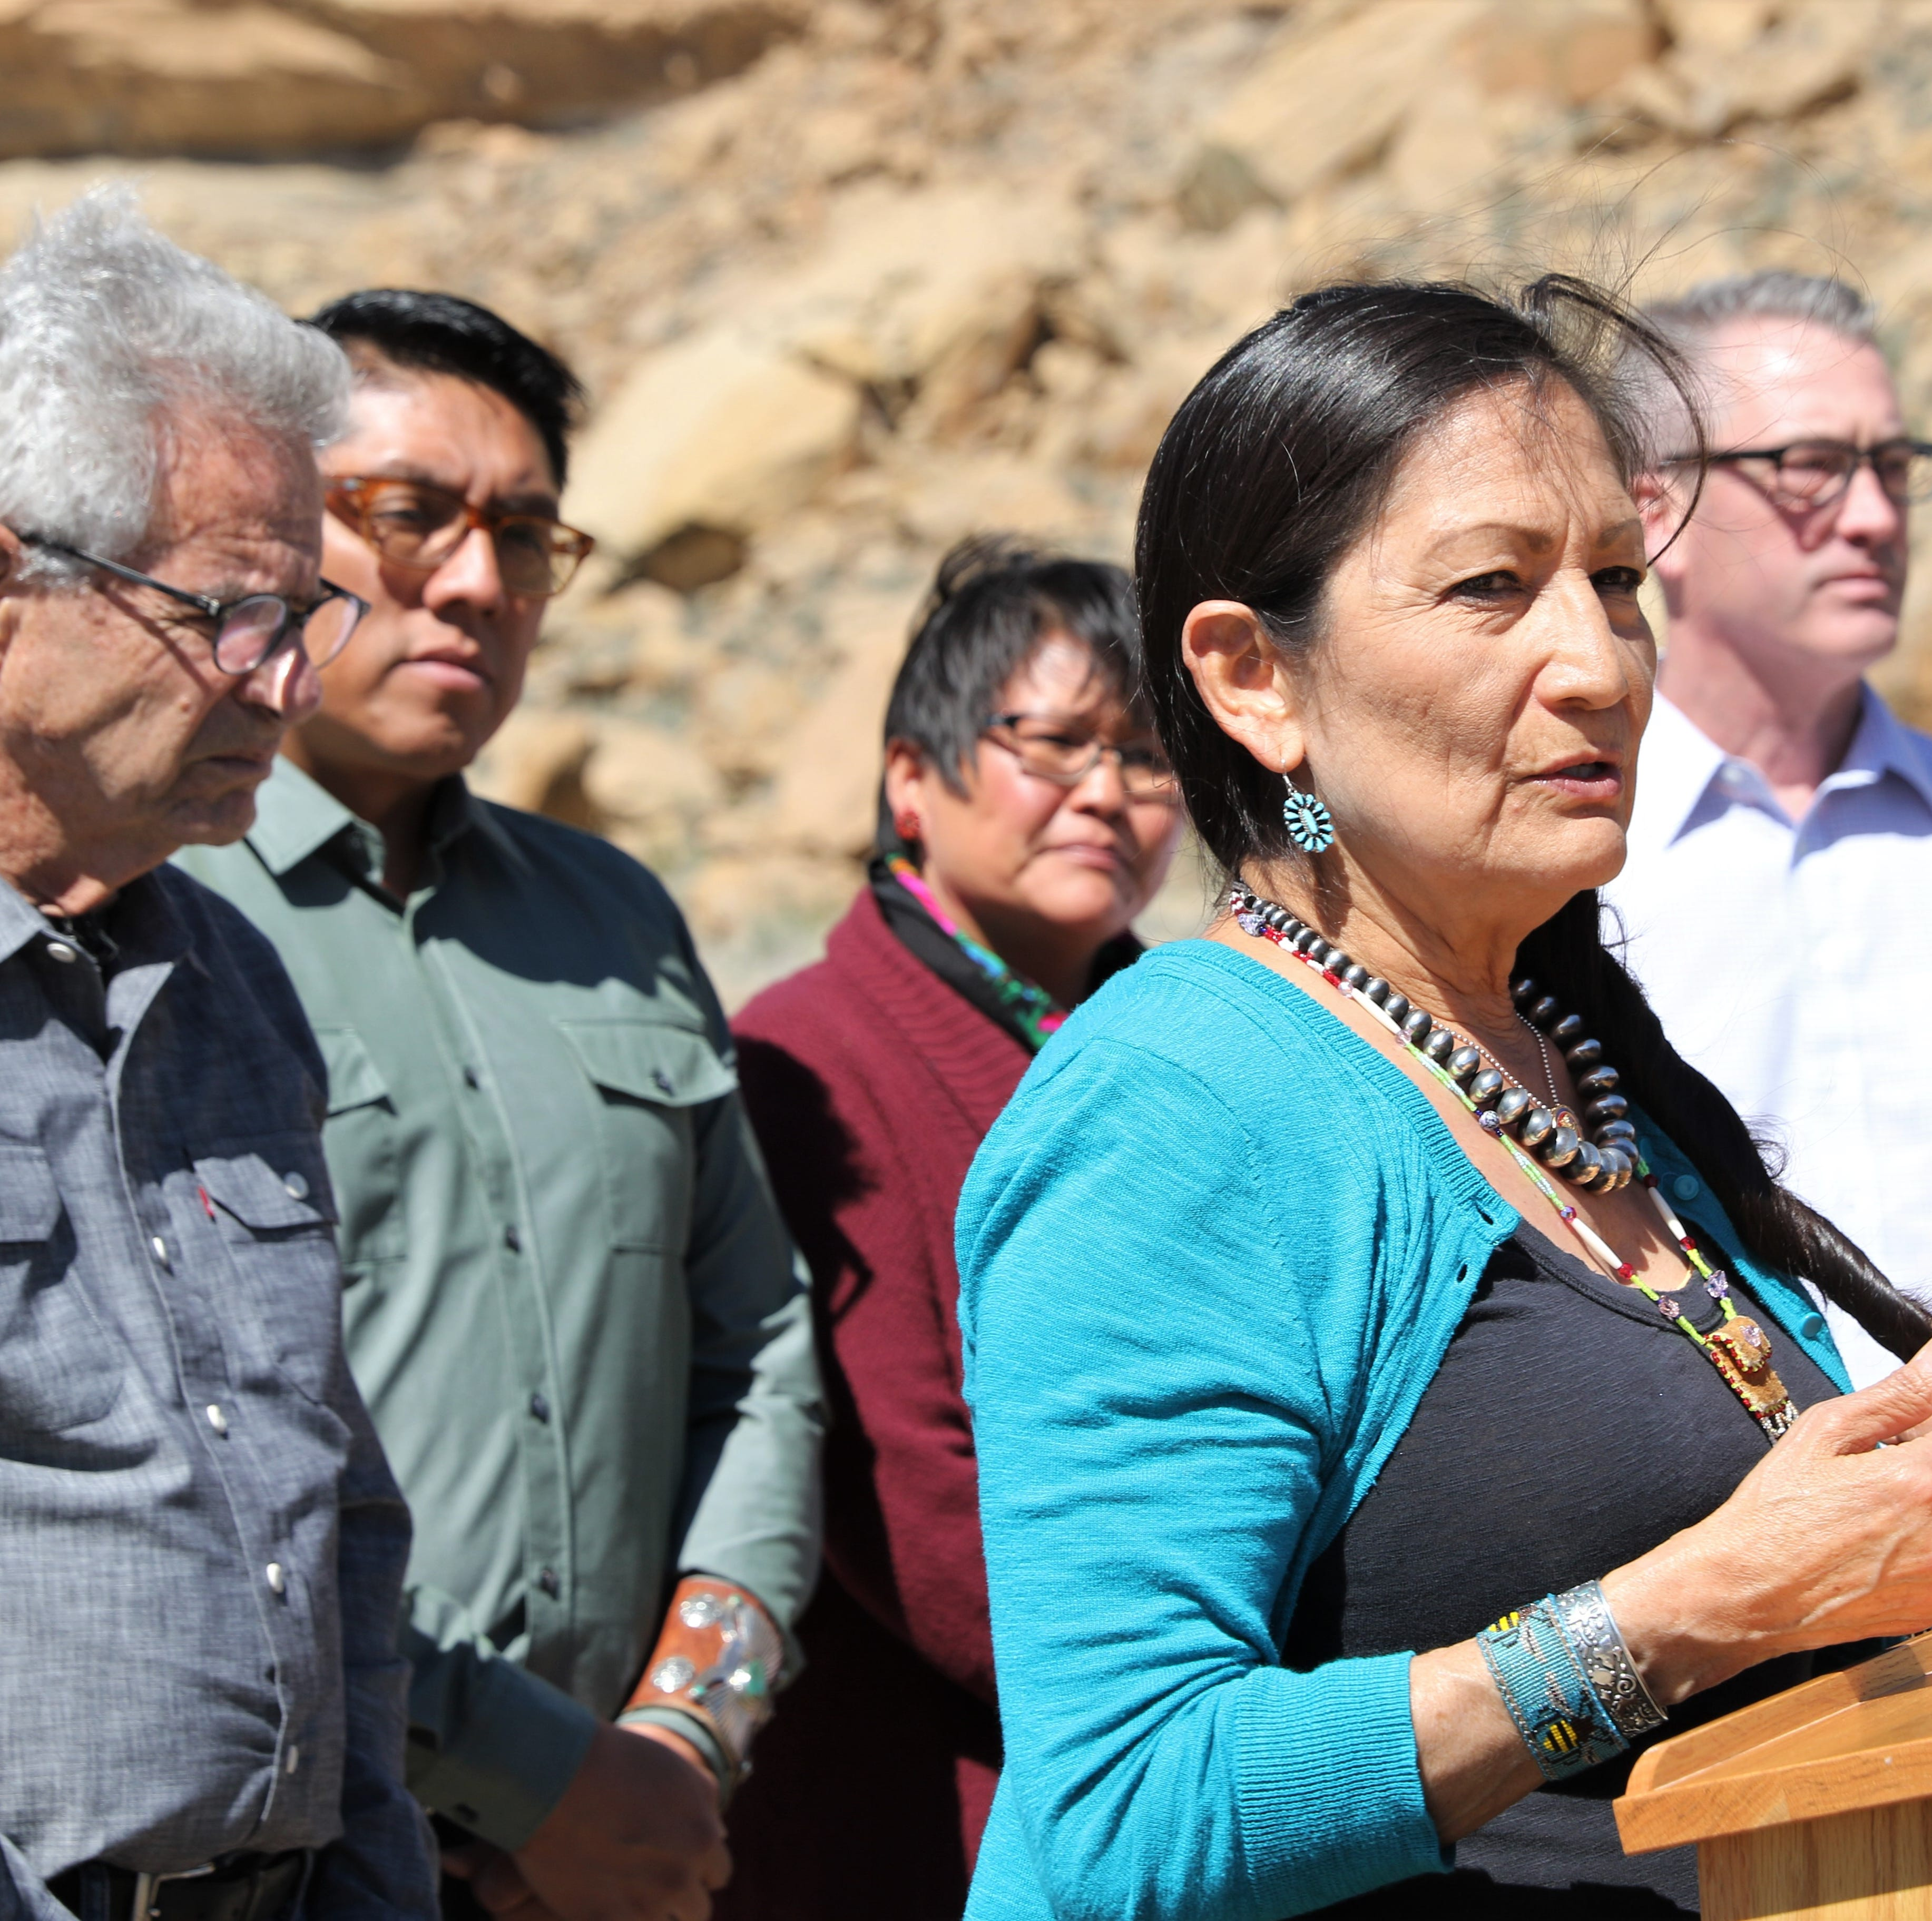 Congressional subcommittee visits Chaco Canyon as debate on oil, gas development continues